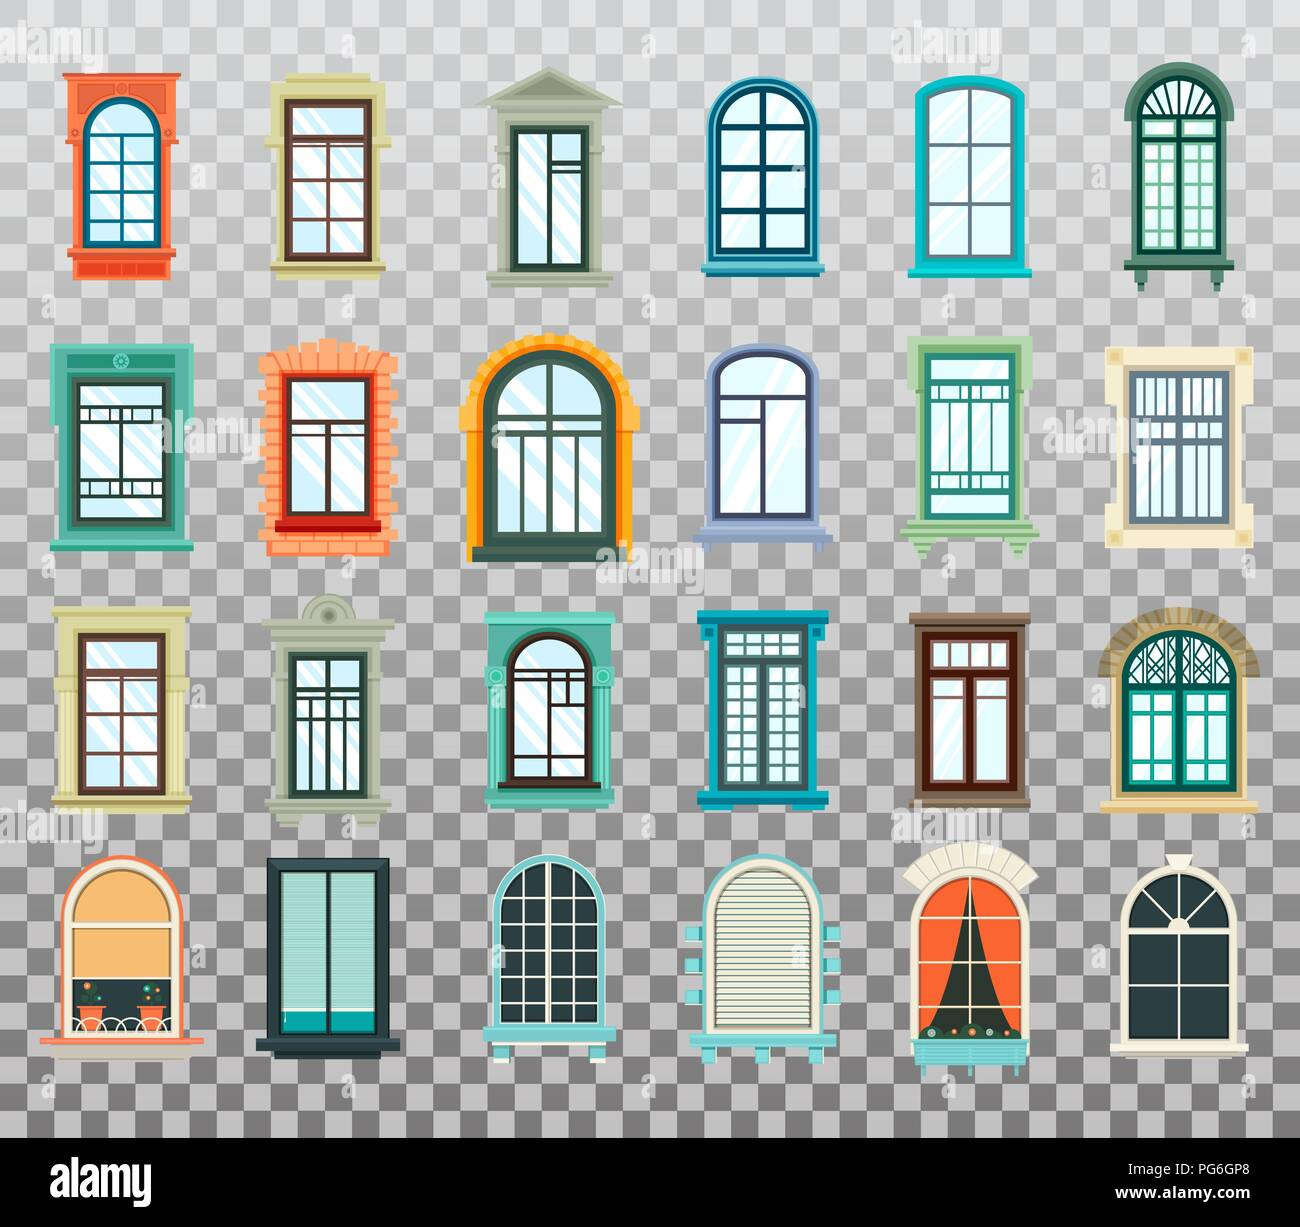 Retro Wood Or Wooden Window Frames View Isolated On House Wall Detailed Plastic Window With Curtains Or Pot Isolated Architecture Design Outdoor Or Exterior View Building And Home Theme Stock Vector Image